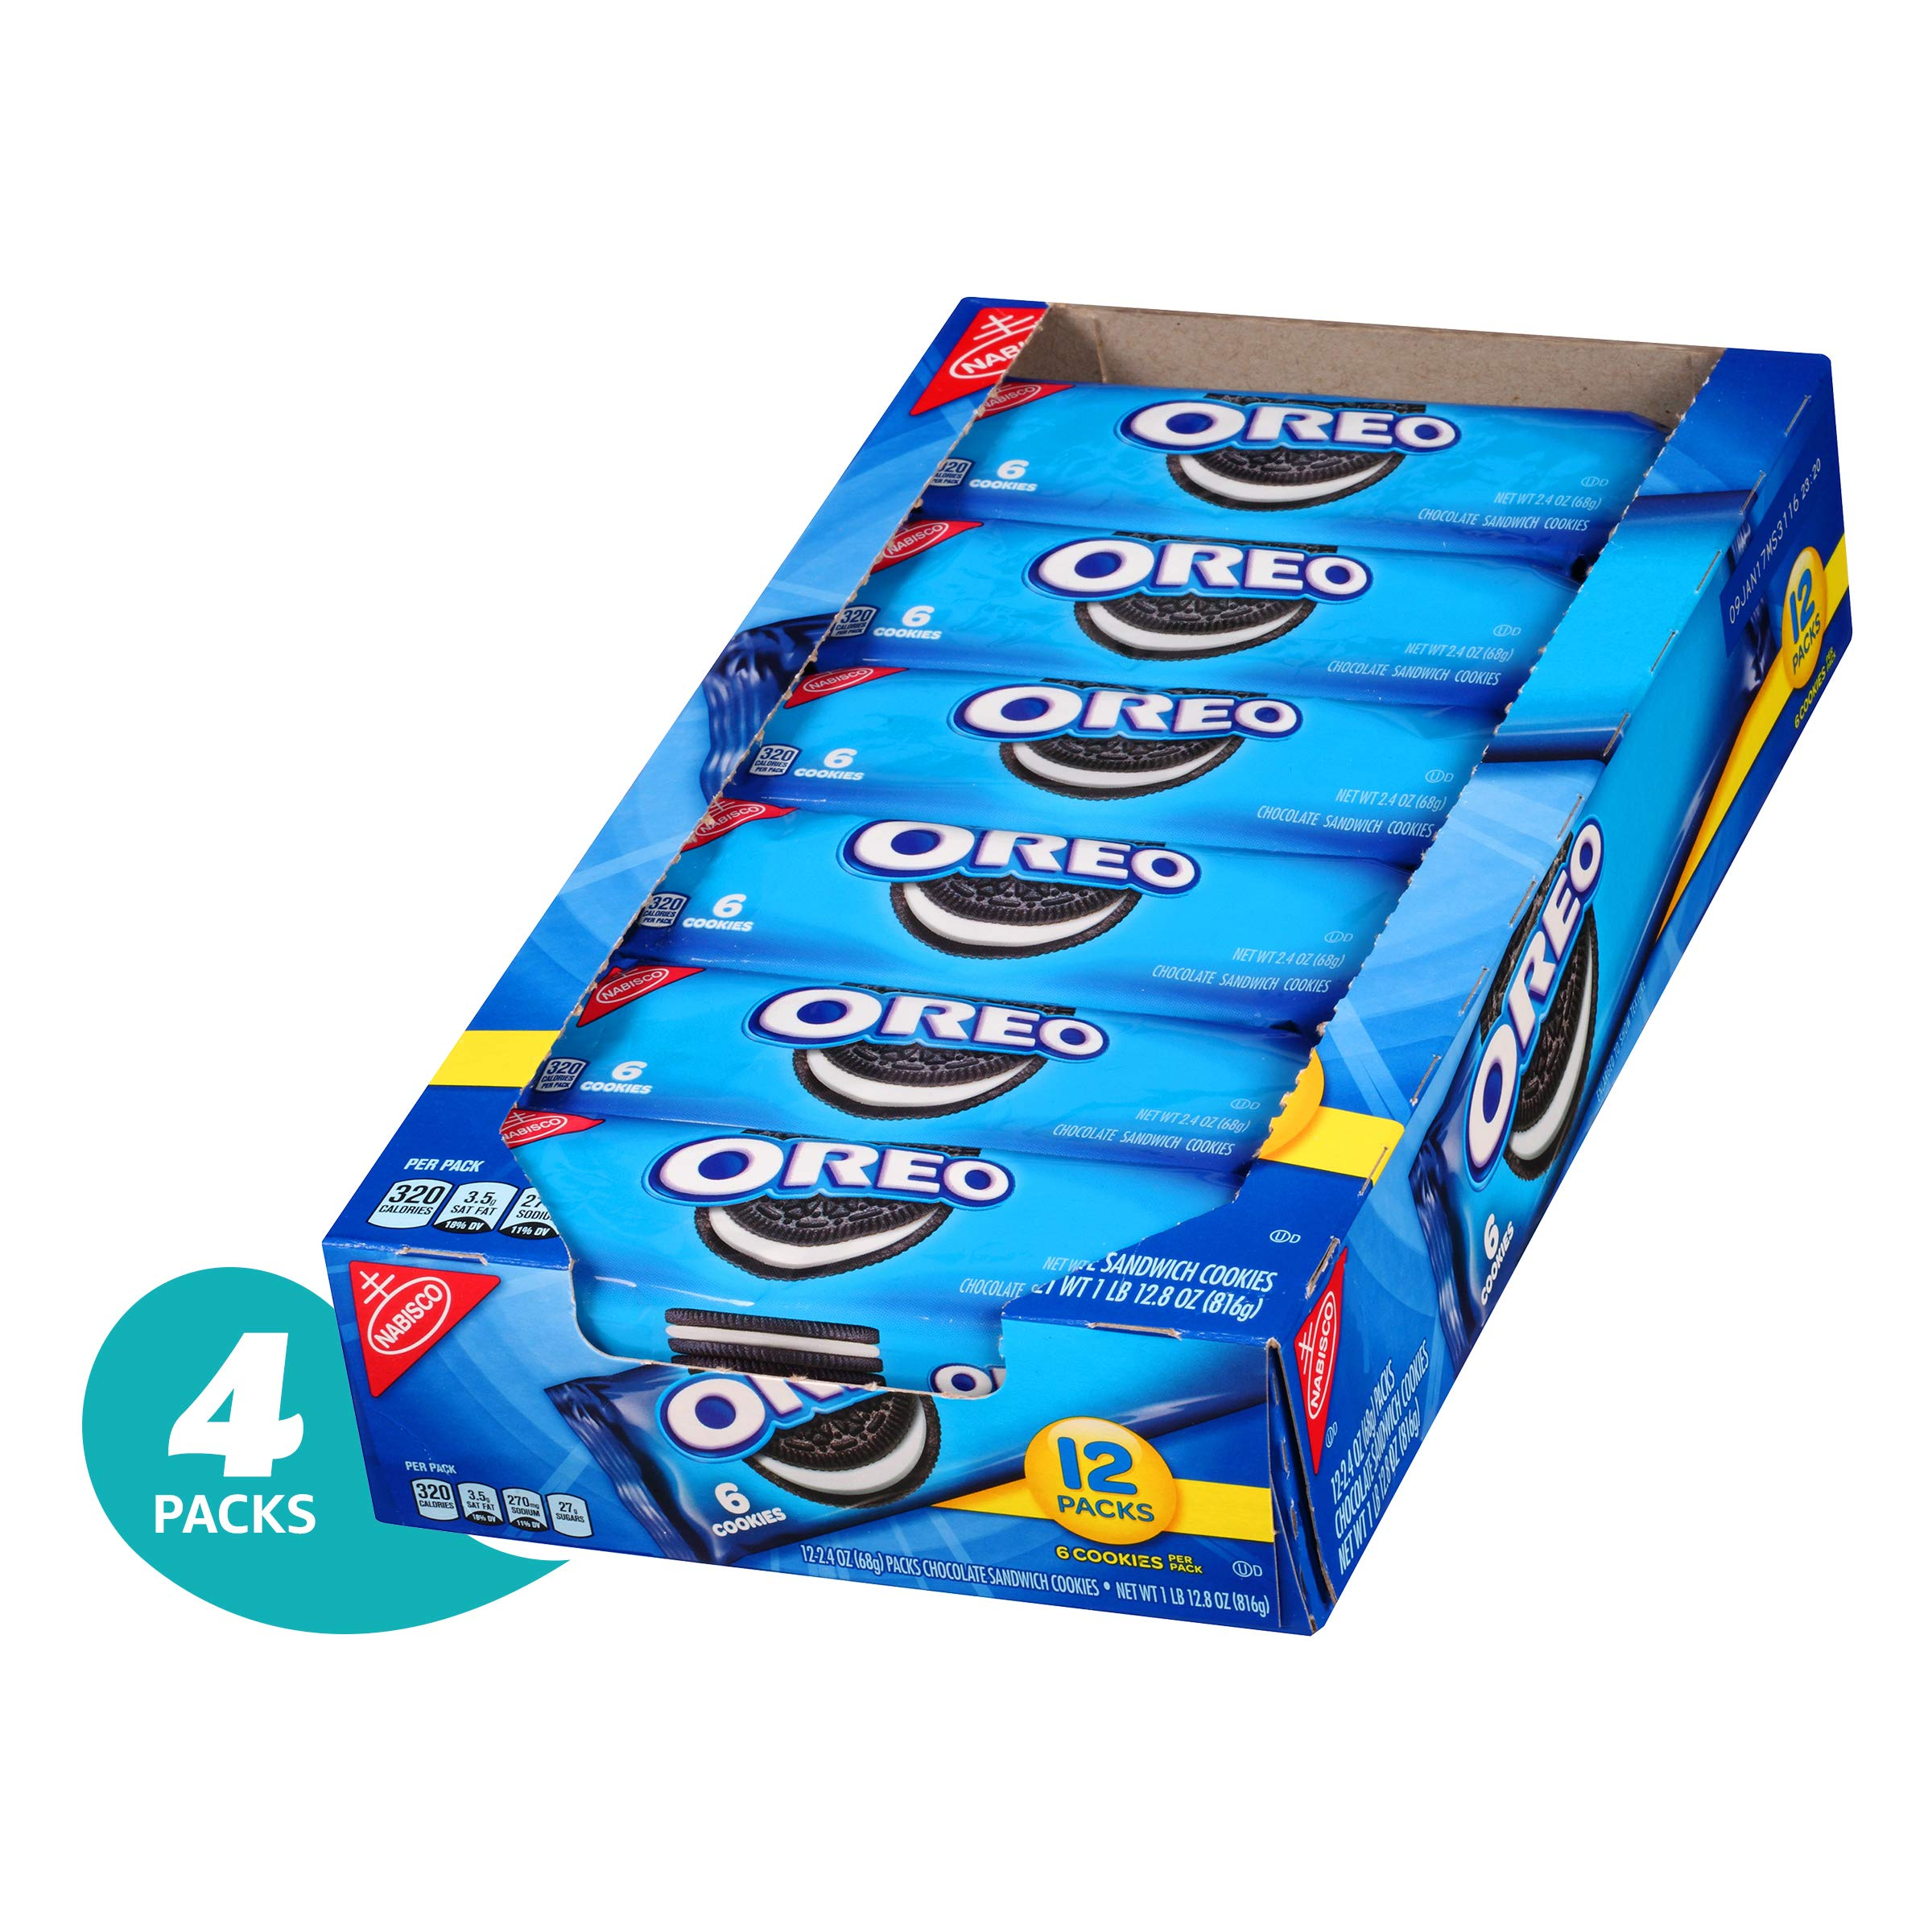 Oreo Chocolate Sandwich Cookies - Snack Packs, Count Box, 28.8 oz (Pack of 4)